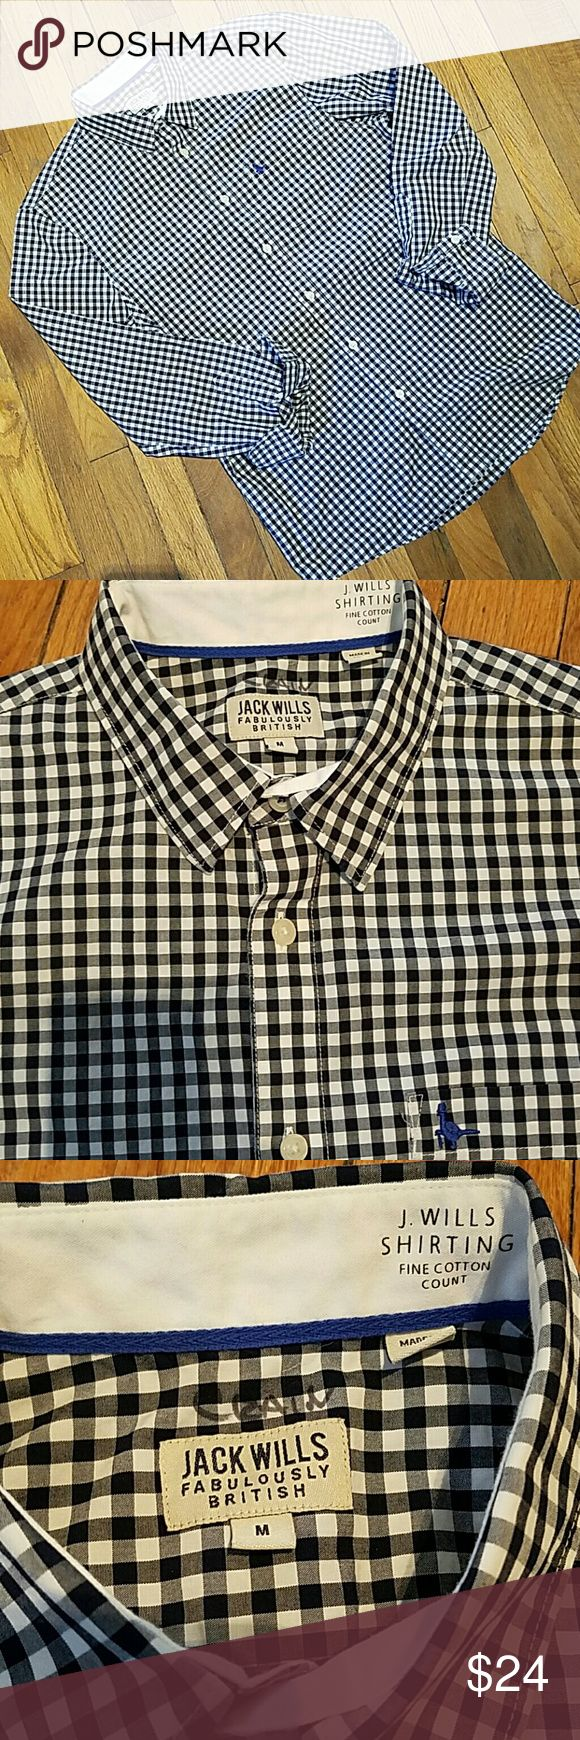 Jack Wills navy gingham M 100% cotton shirt Jack Wills navy gingham M 100% cotton shirt. Classic style J.Wills button down in like new condition,  has writing at neck that is not visible from other side. Jack wills Shirts